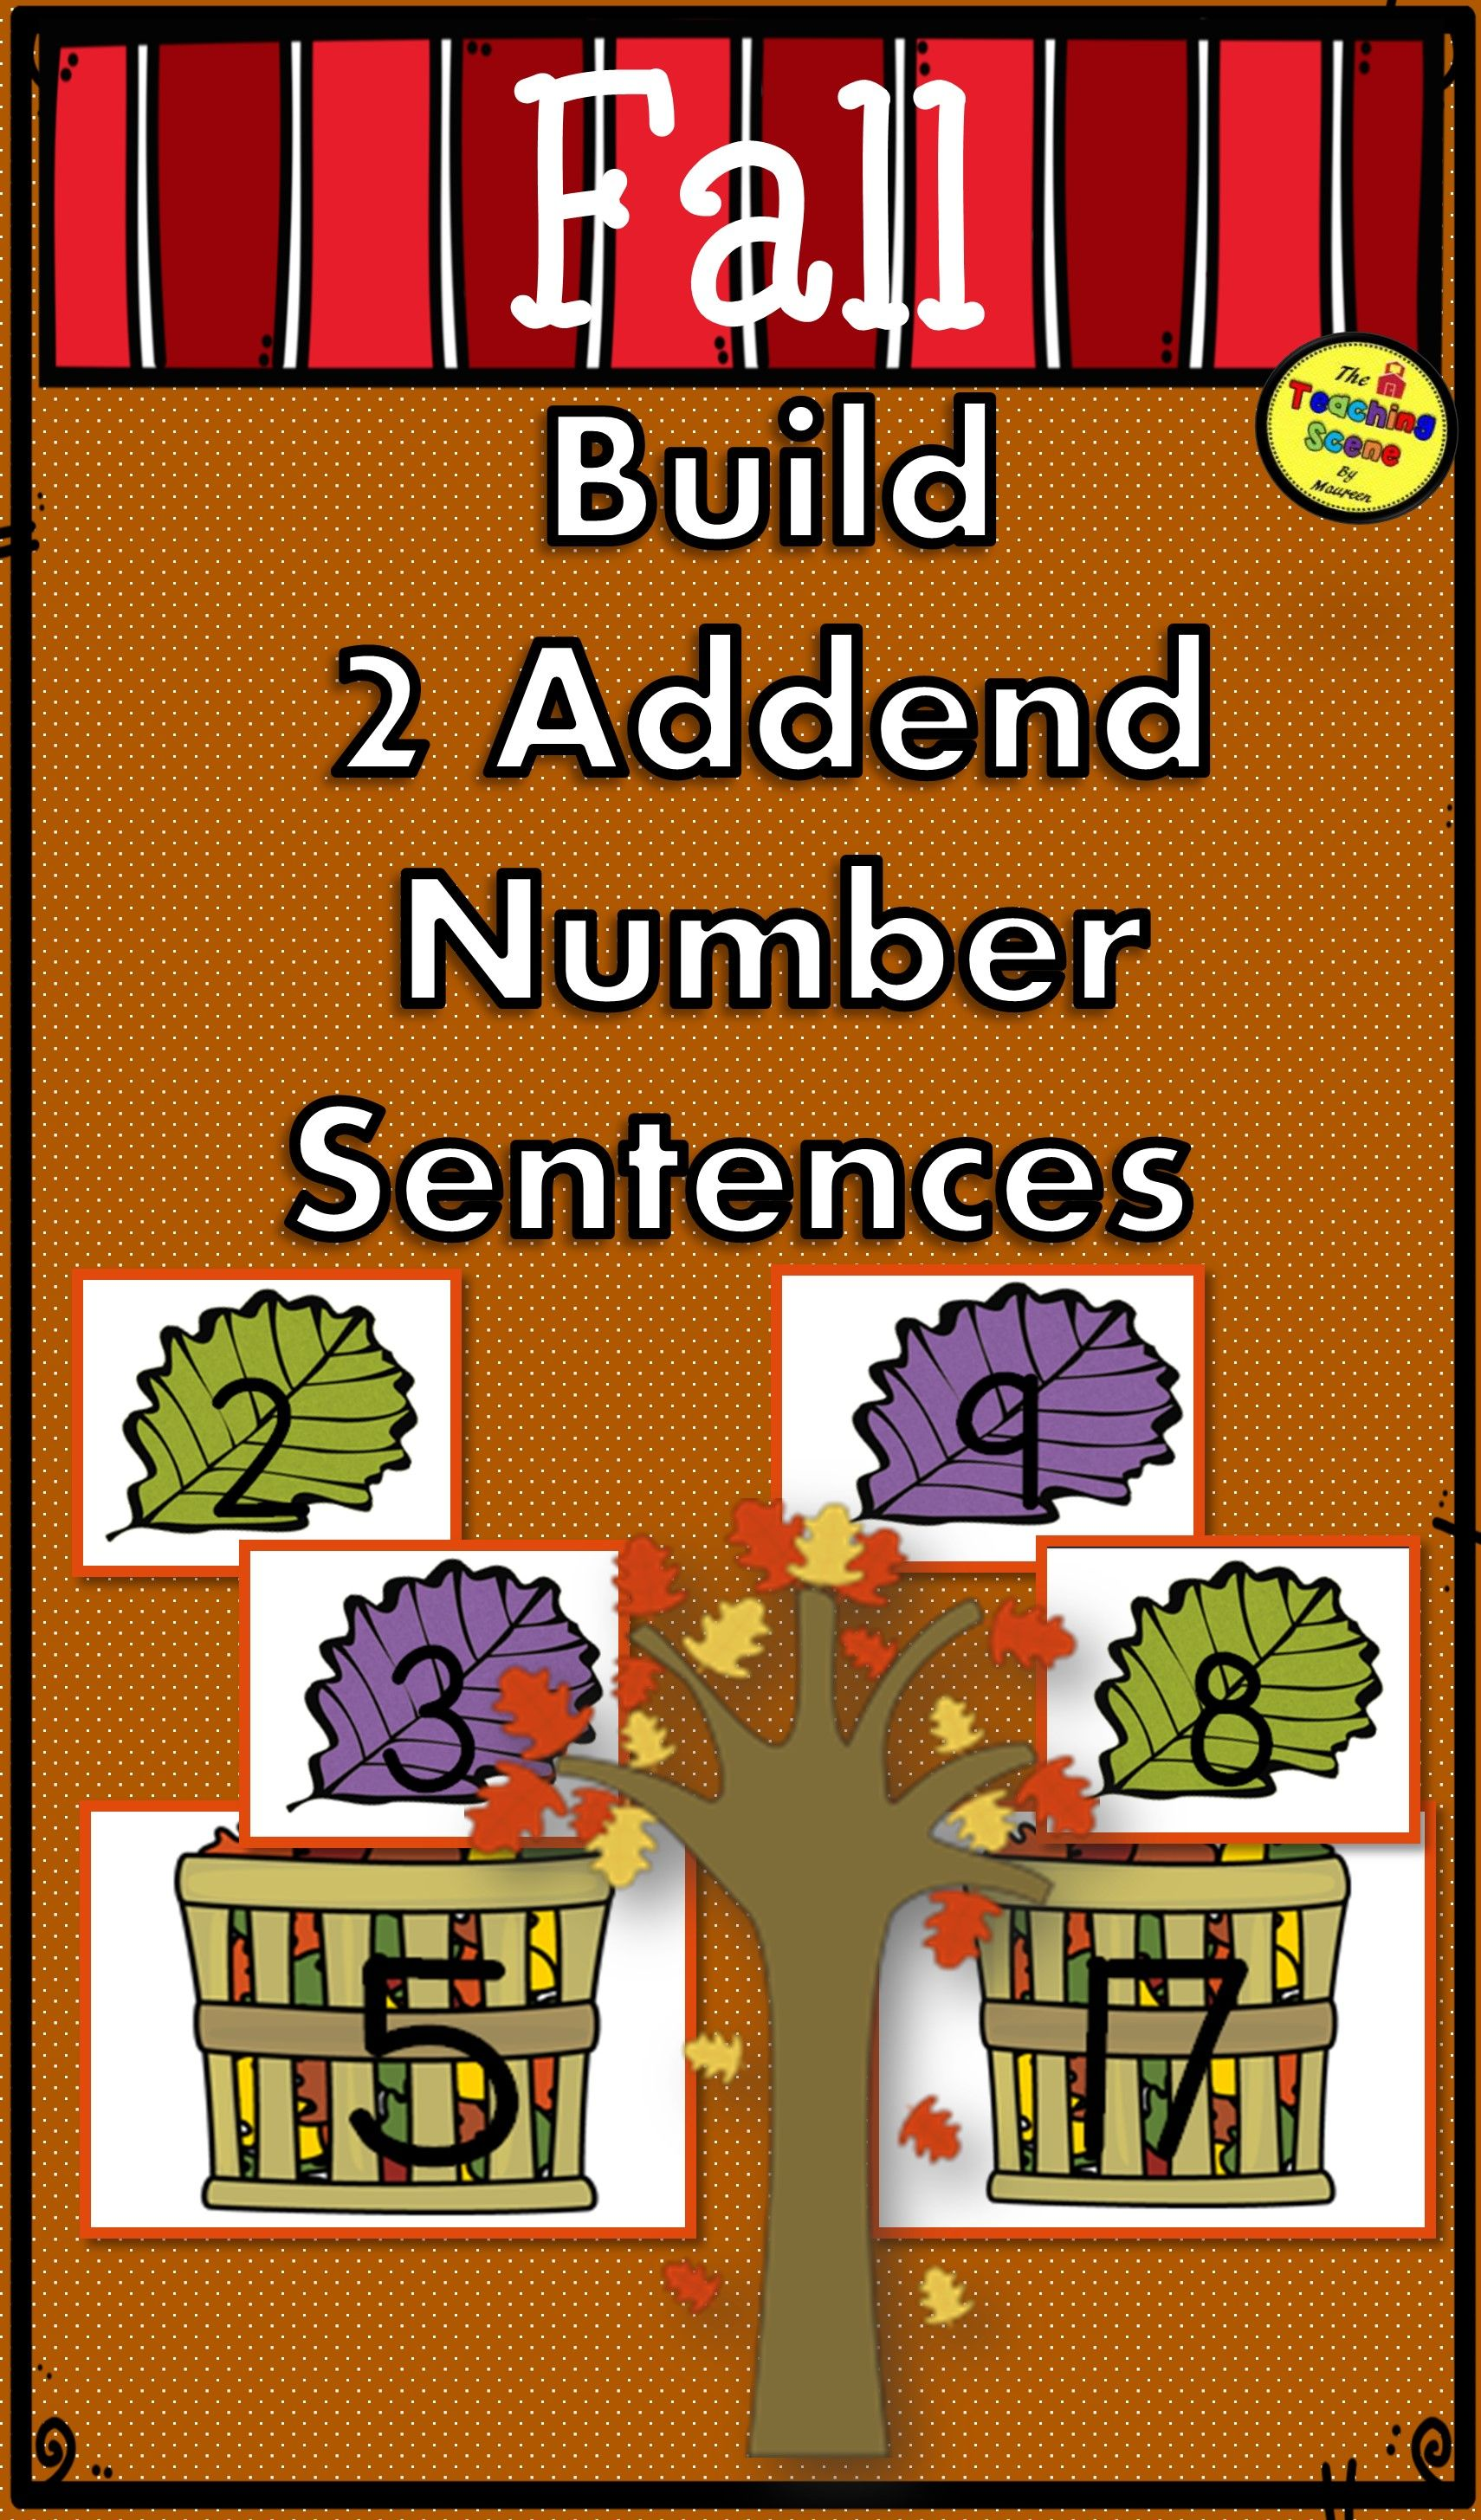 Fall Build A 2 Addend Number Sentence Math Center Game For